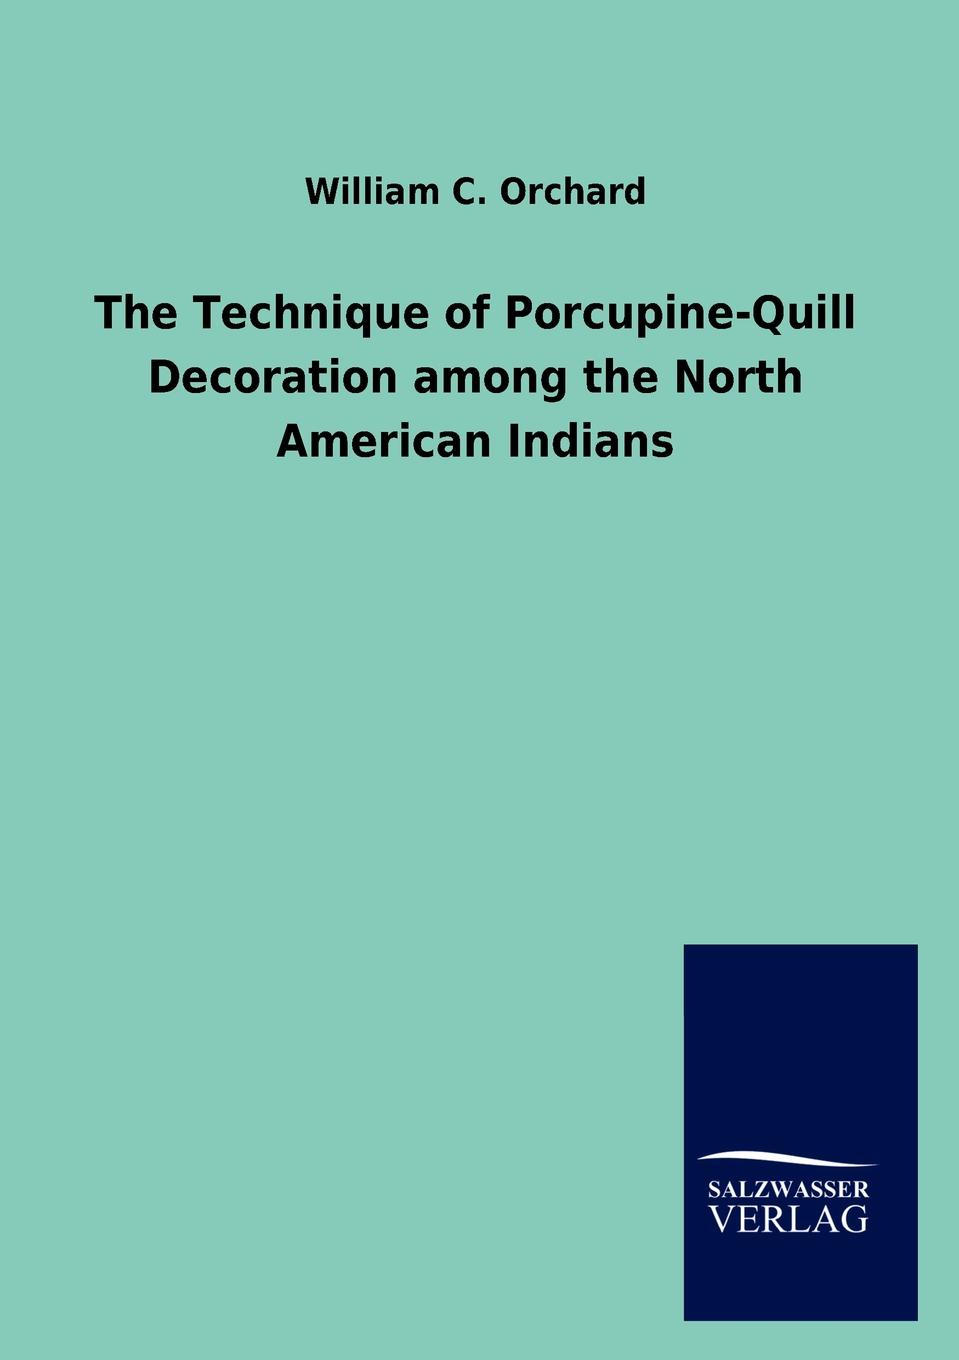 William C. Orchard The Technique of Porcupine-Quill Decoration among the North American Indians